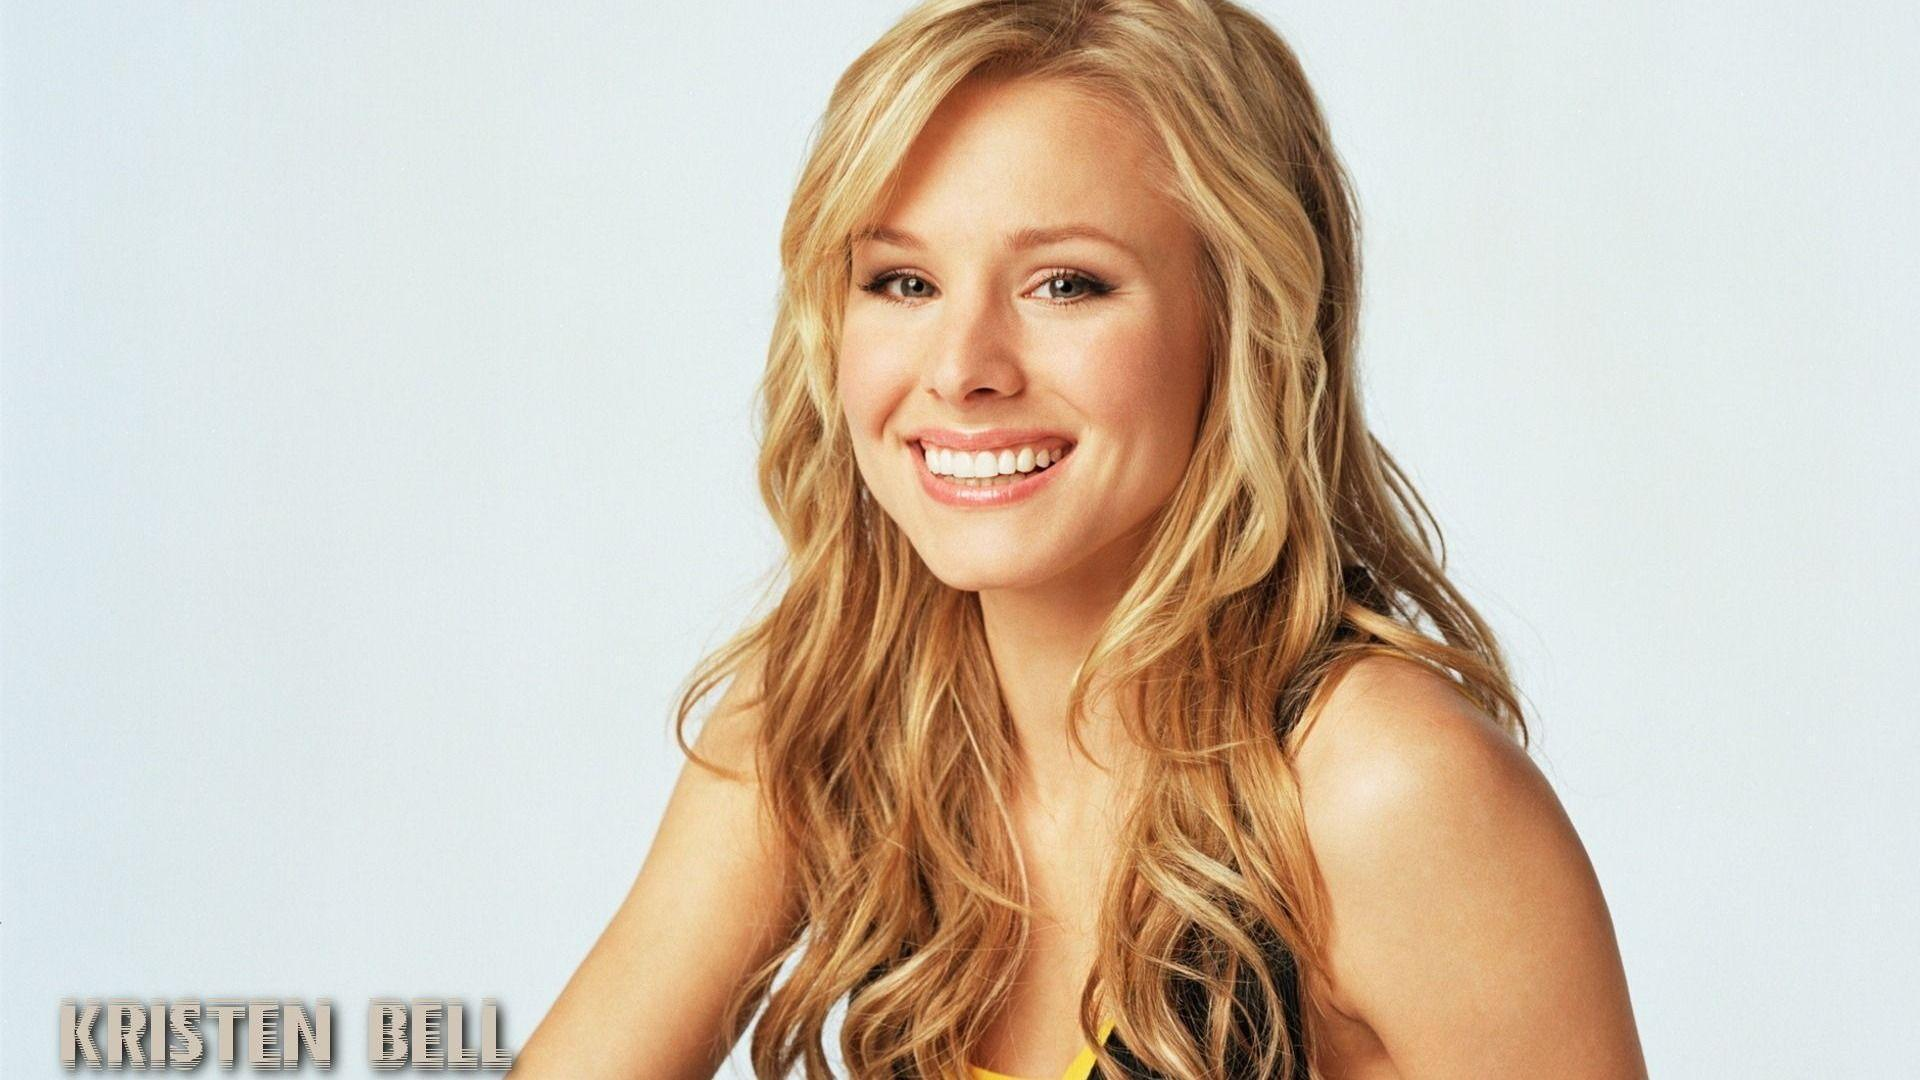 New Kristen Bell Pictures Full Hd Wallpapers Celebrities Picture